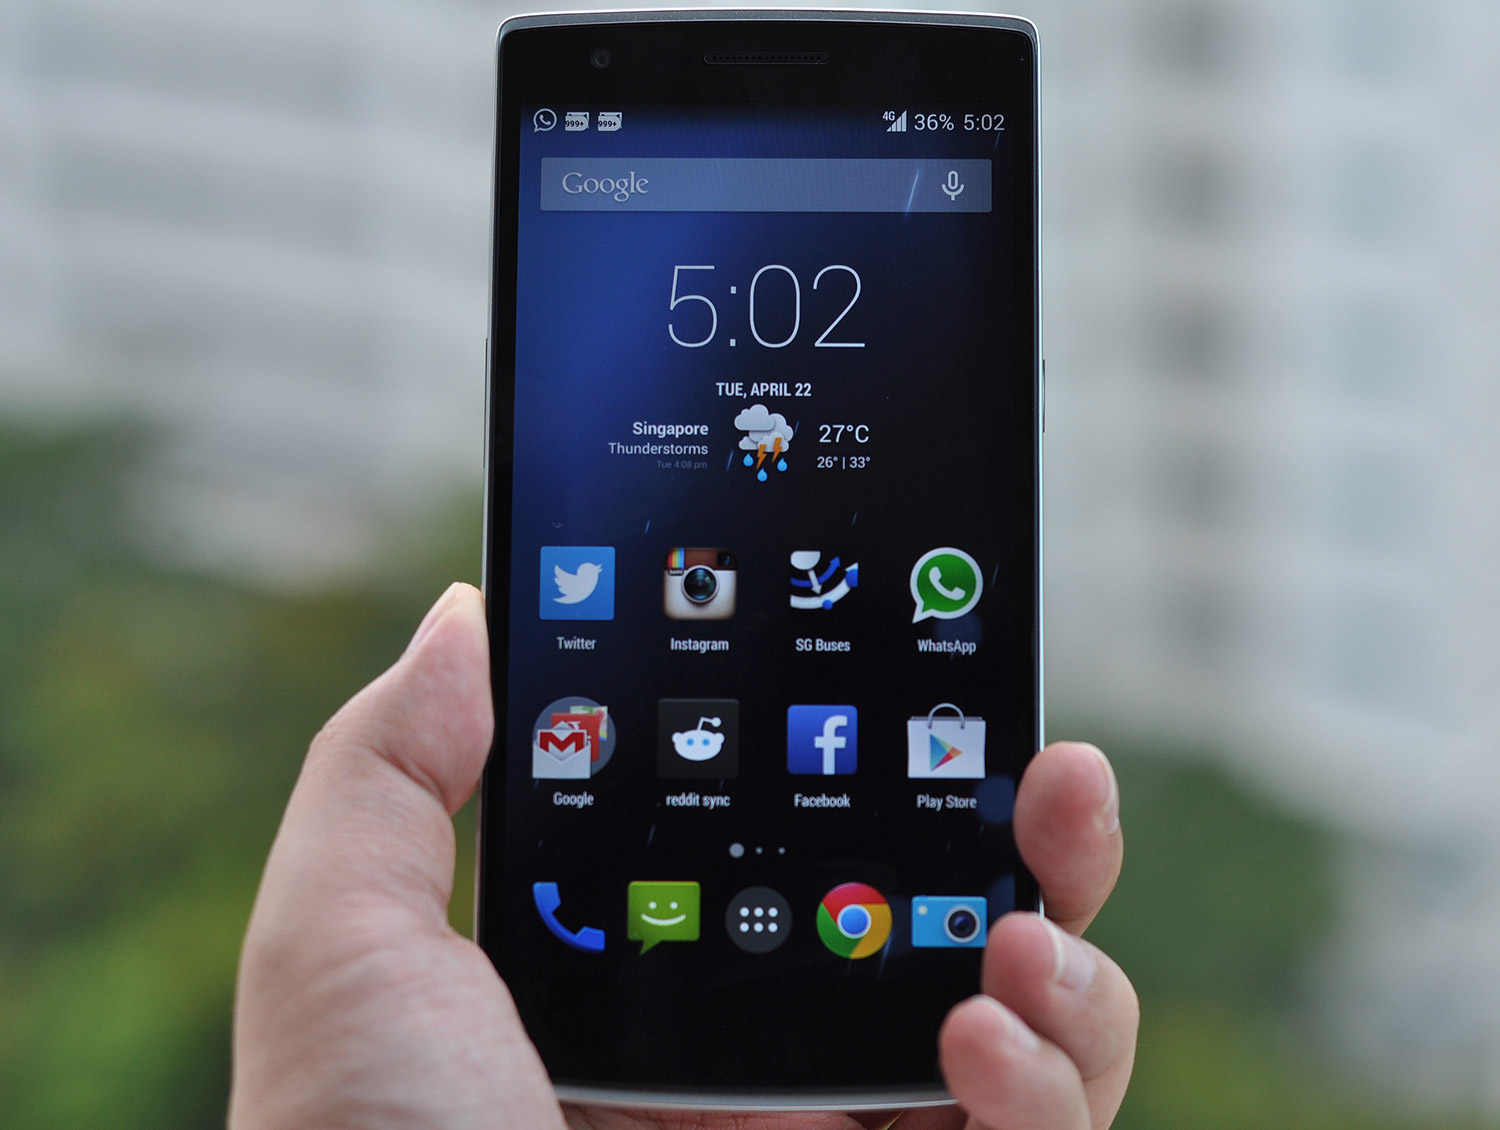 Meet the OnePlus One